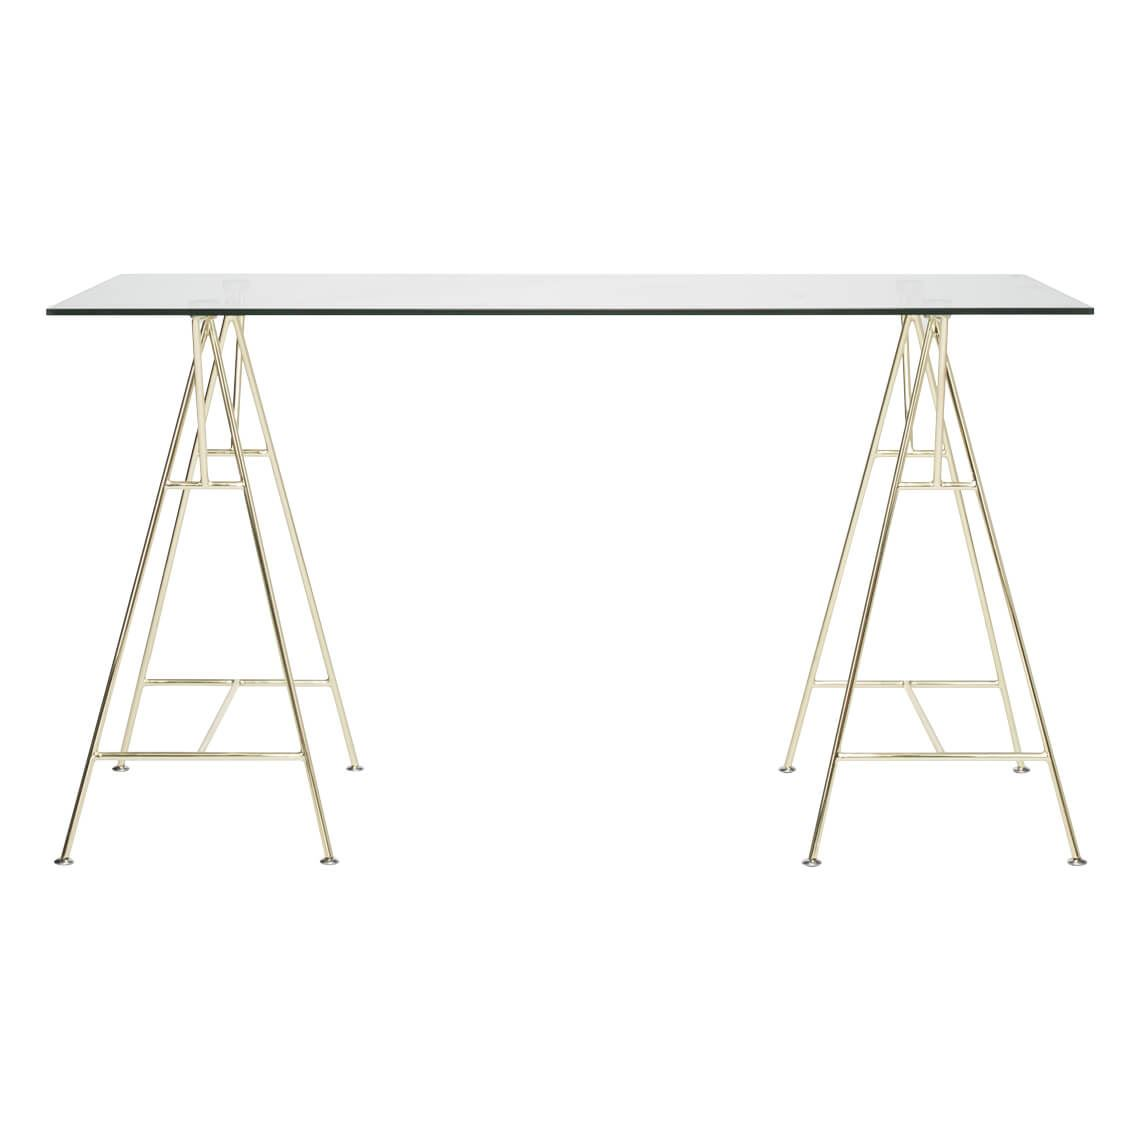 Modern Trestle Desk Size W 140cm x D 60cm x H 76cm in Gold Tempered Glass/Steel Freedom by Freedom, a Desks for sale on Style Sourcebook